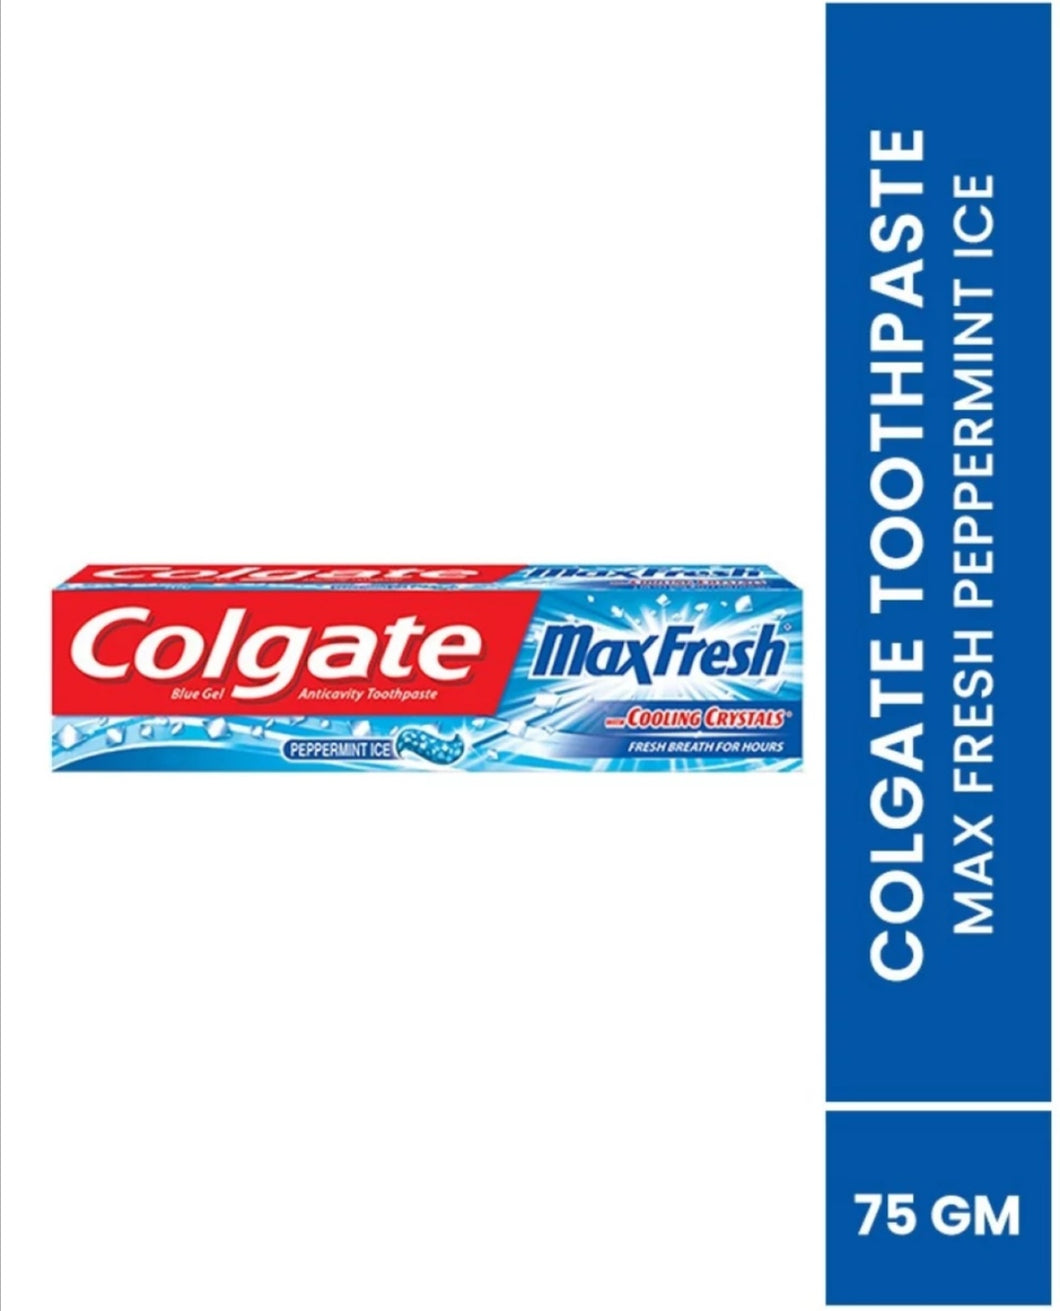 Colgate Maxfresh Peppermint Ice Toothpaste  75g